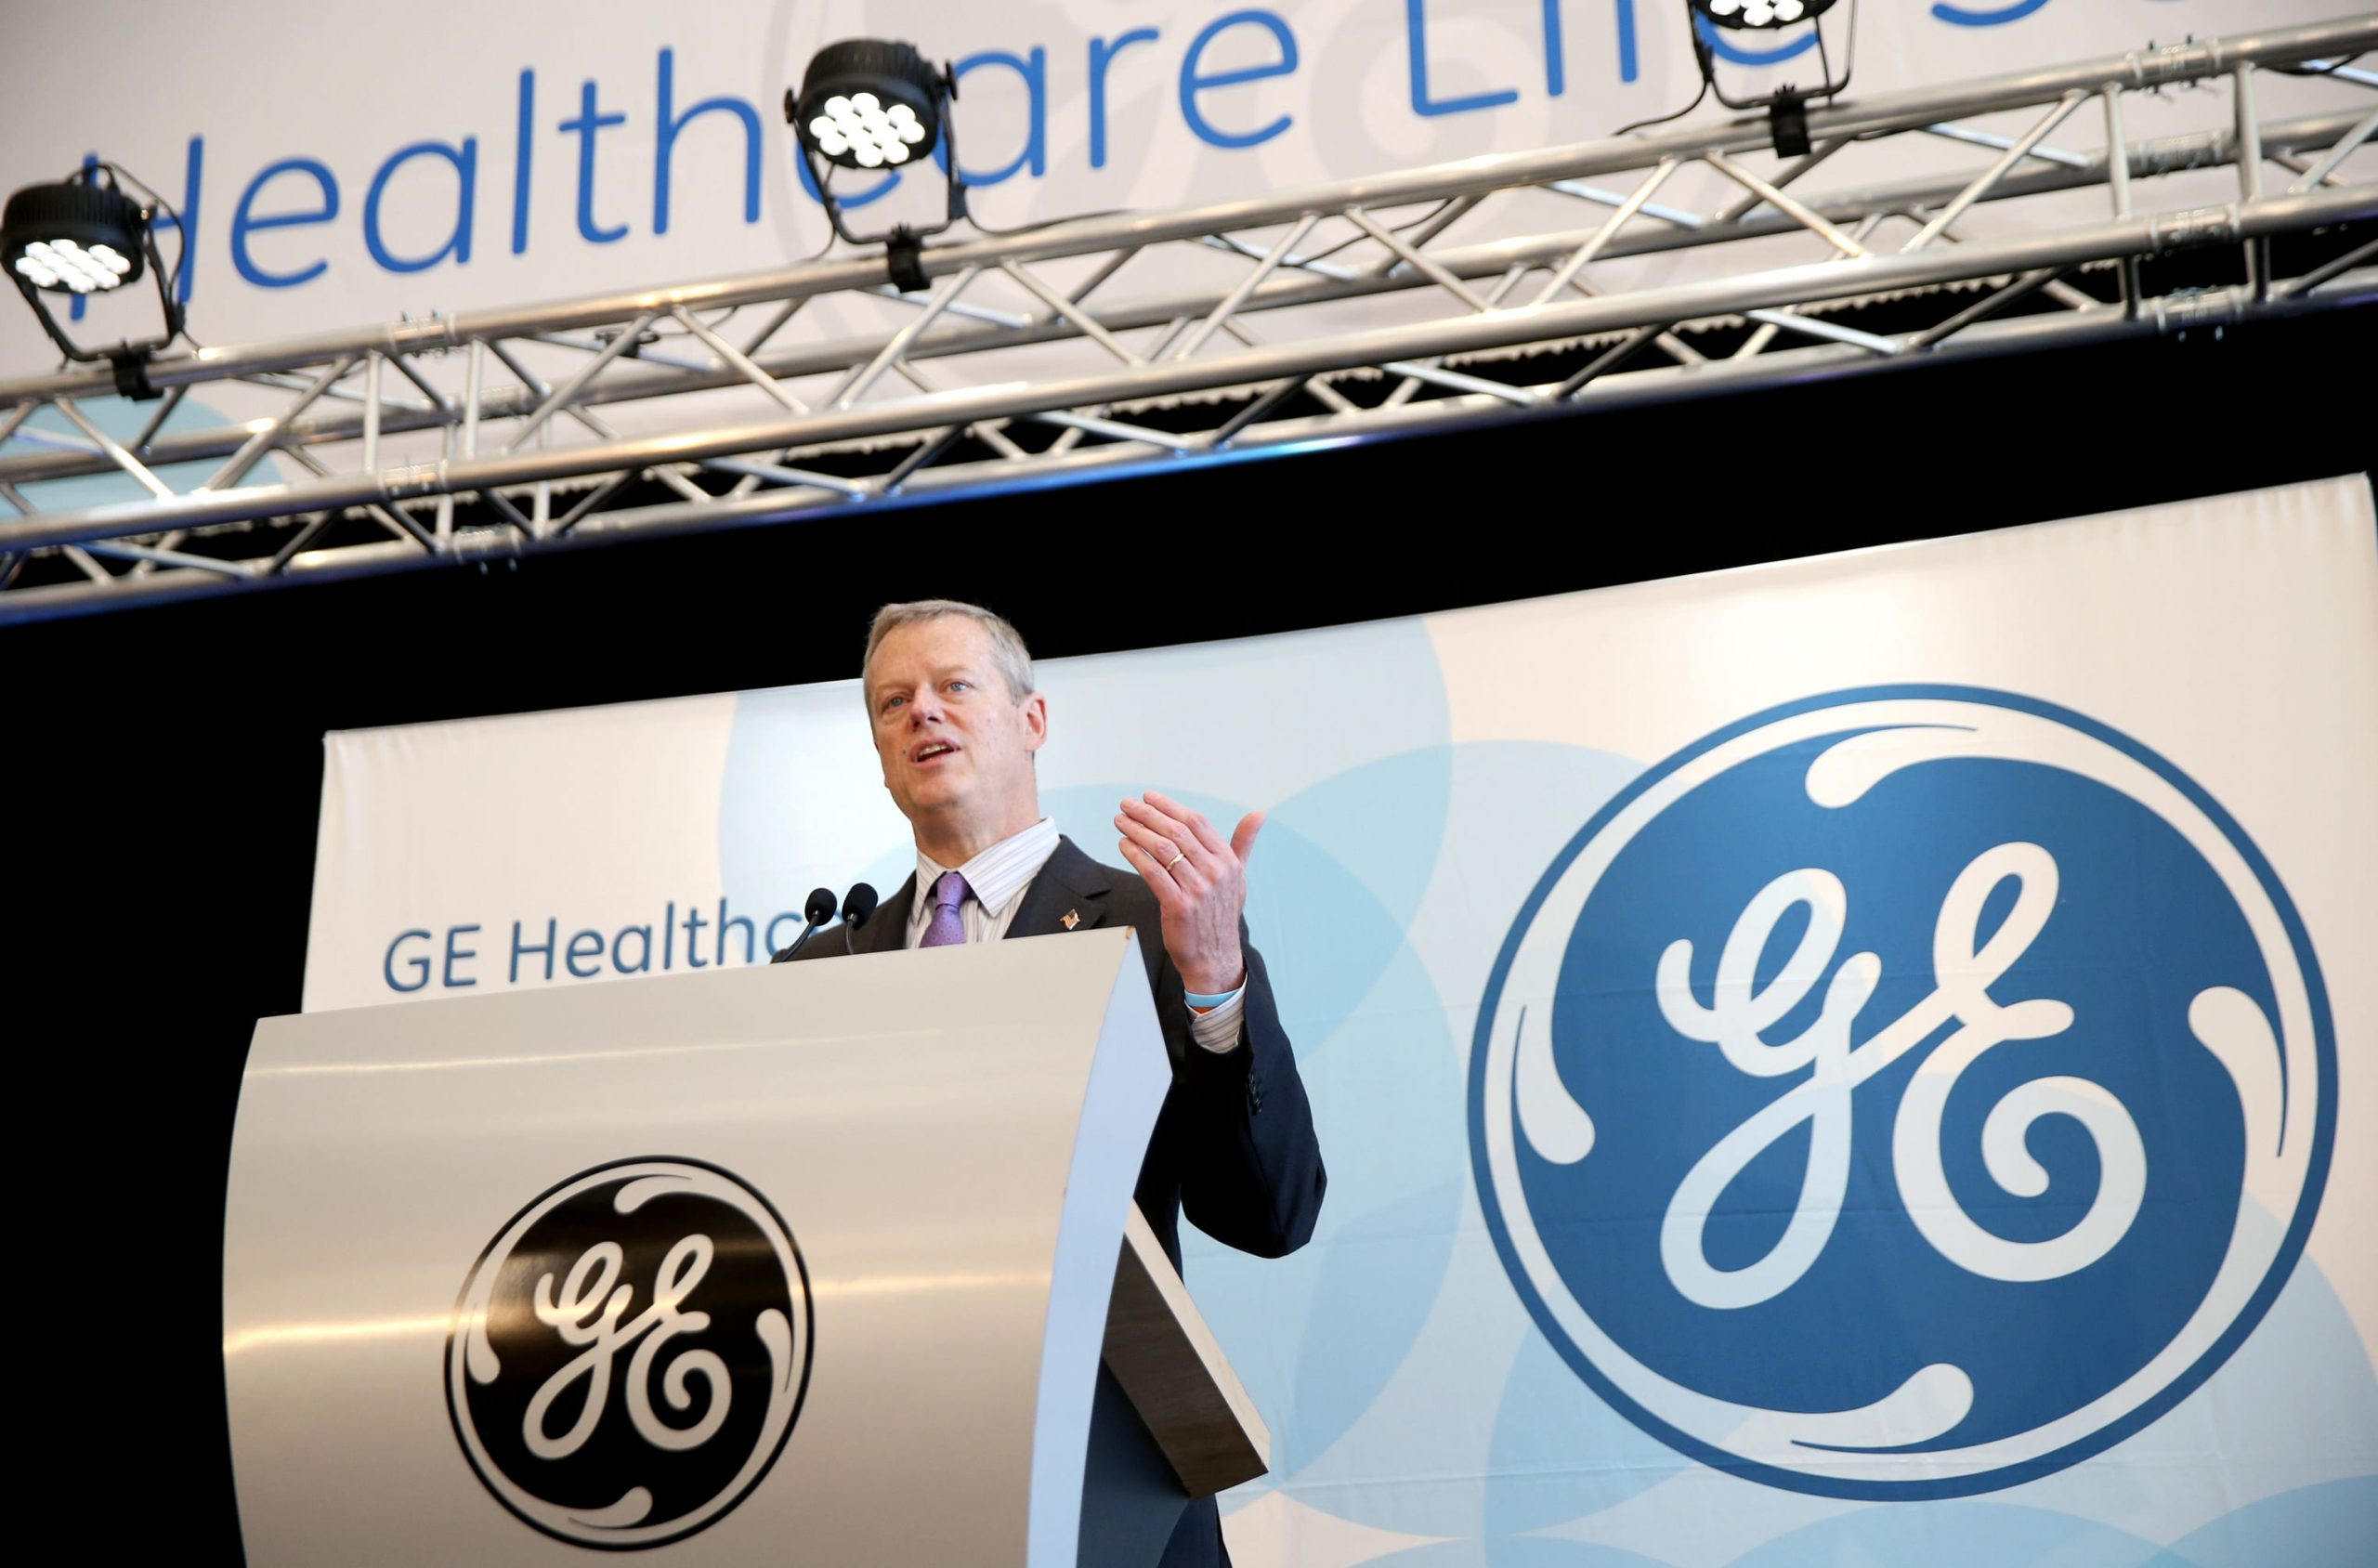 FDA issues cybersecurity warning on GE medical equipment that monitors patients